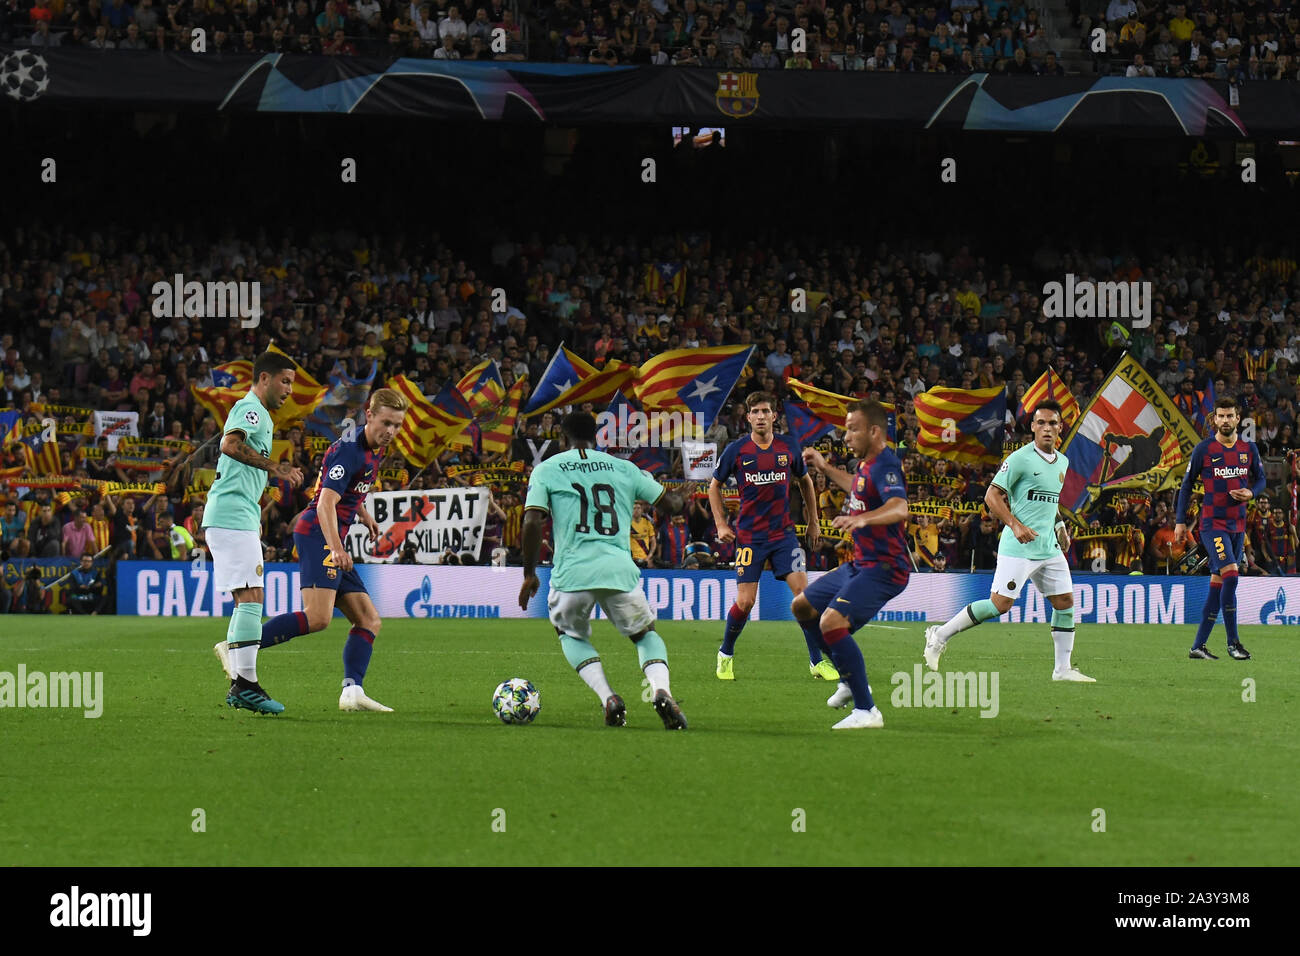 juventus v barcelona high resolution stock photography and images alamy alamy